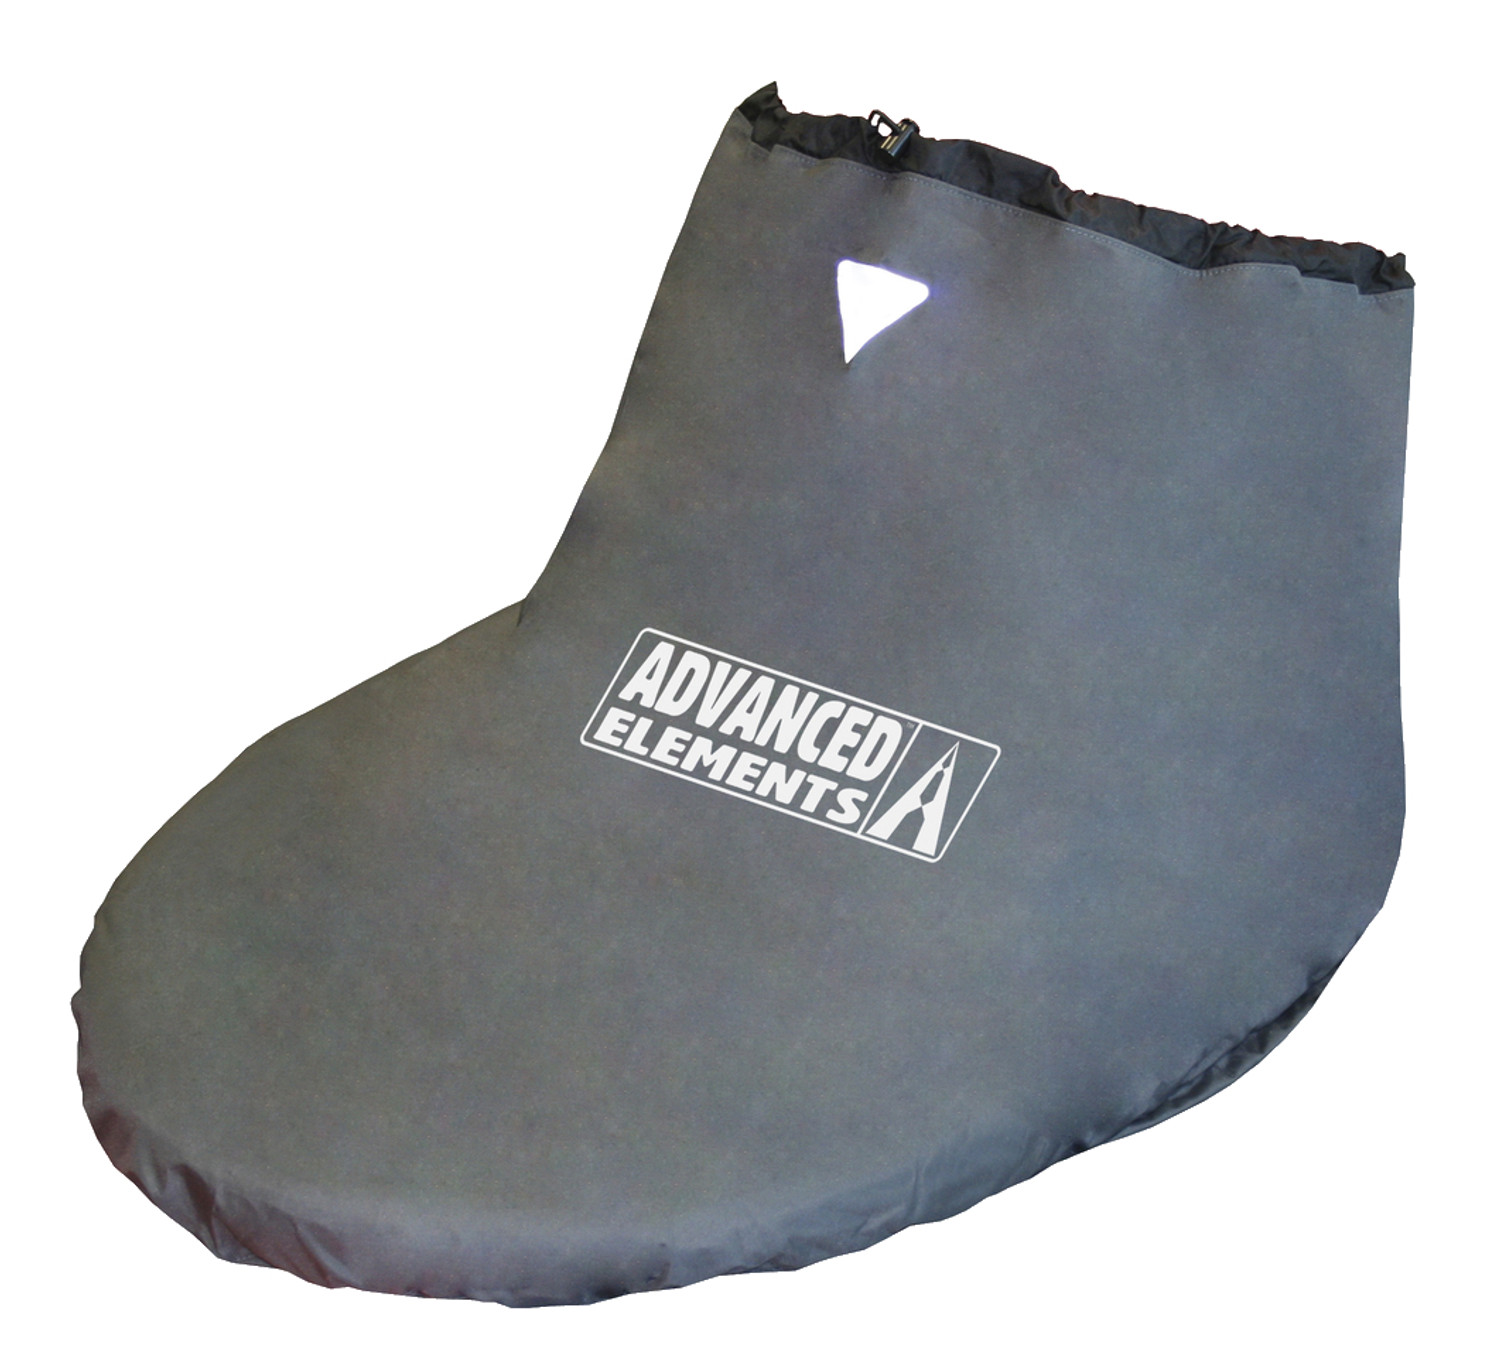 Advanced Elements Packlite Spray Skirt for kayaks with inflatable coaming